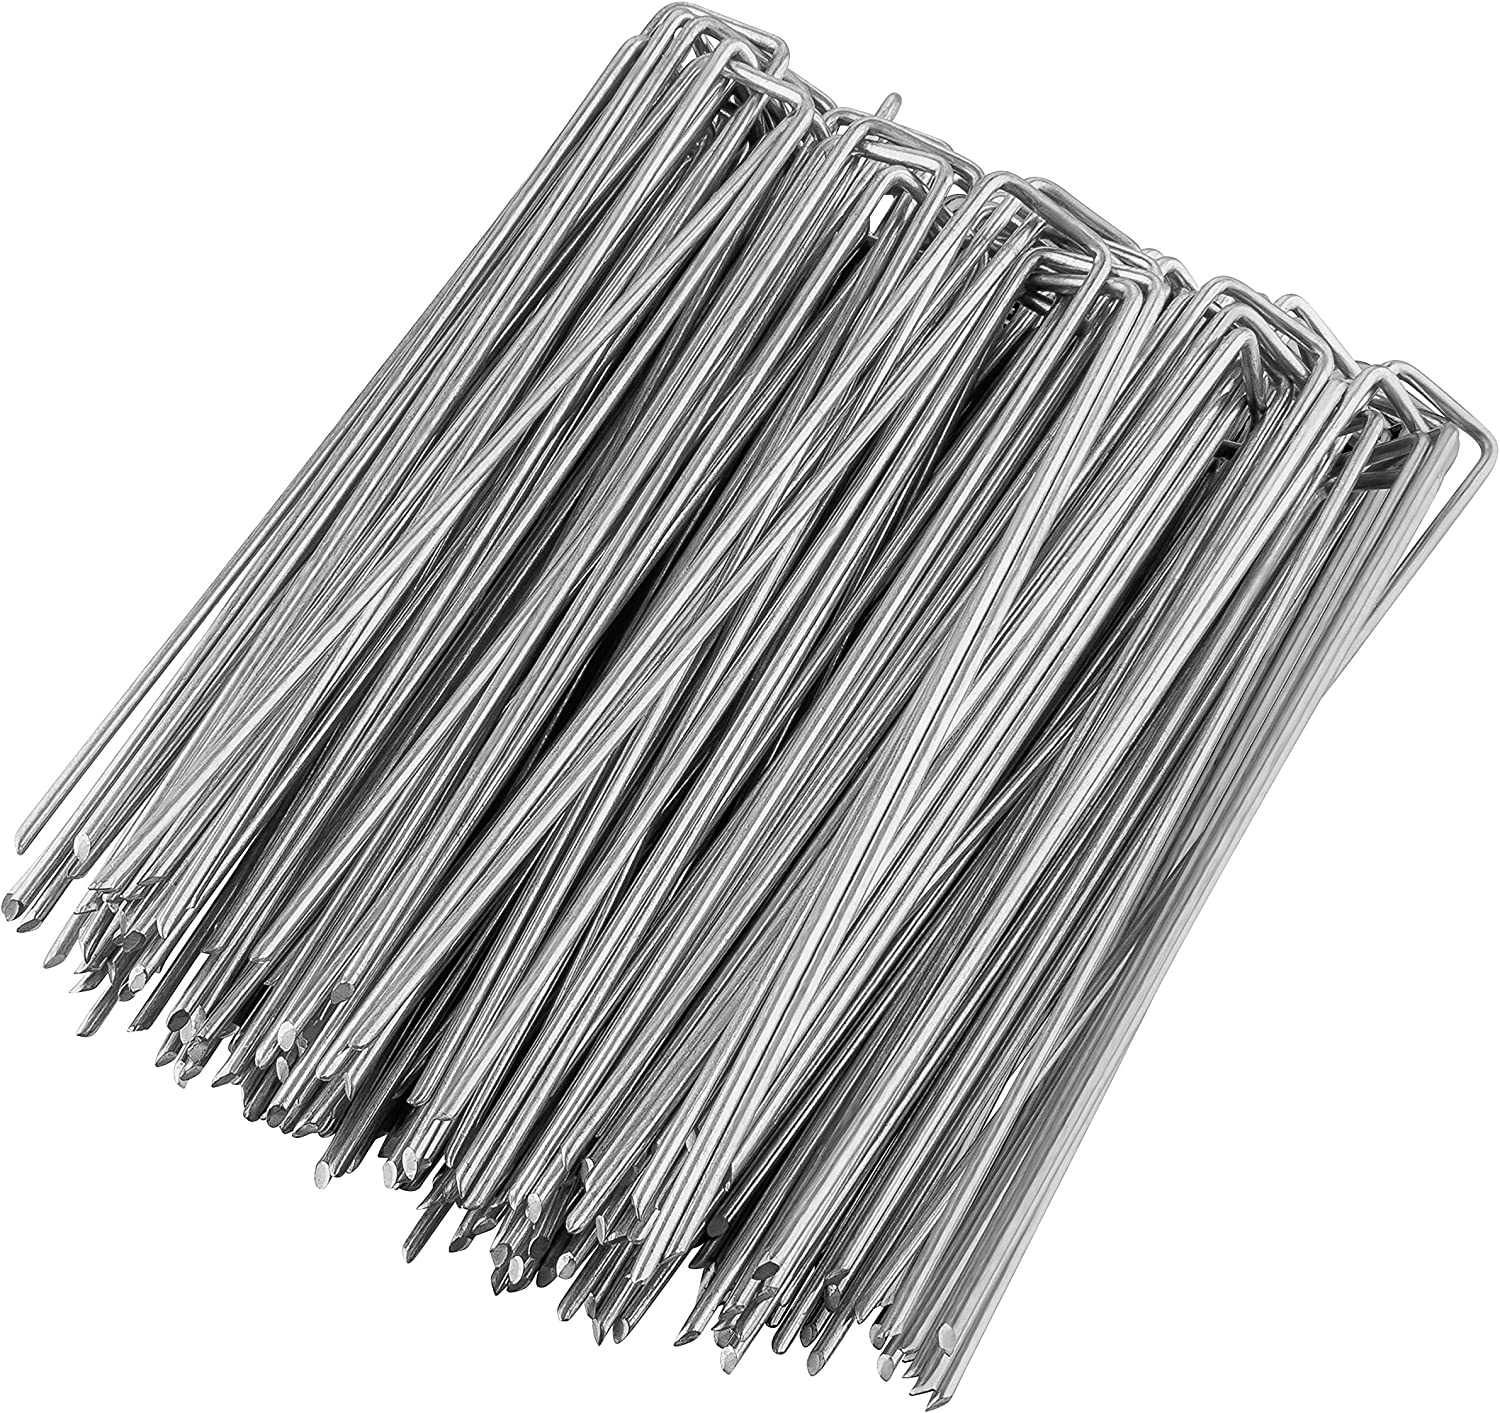 GardenMate Pack of 50 x 250mm multi-purpose steel Garden Securing Pegs Made of 4.1mm thick galvanised steel wire Ideal for hard floors